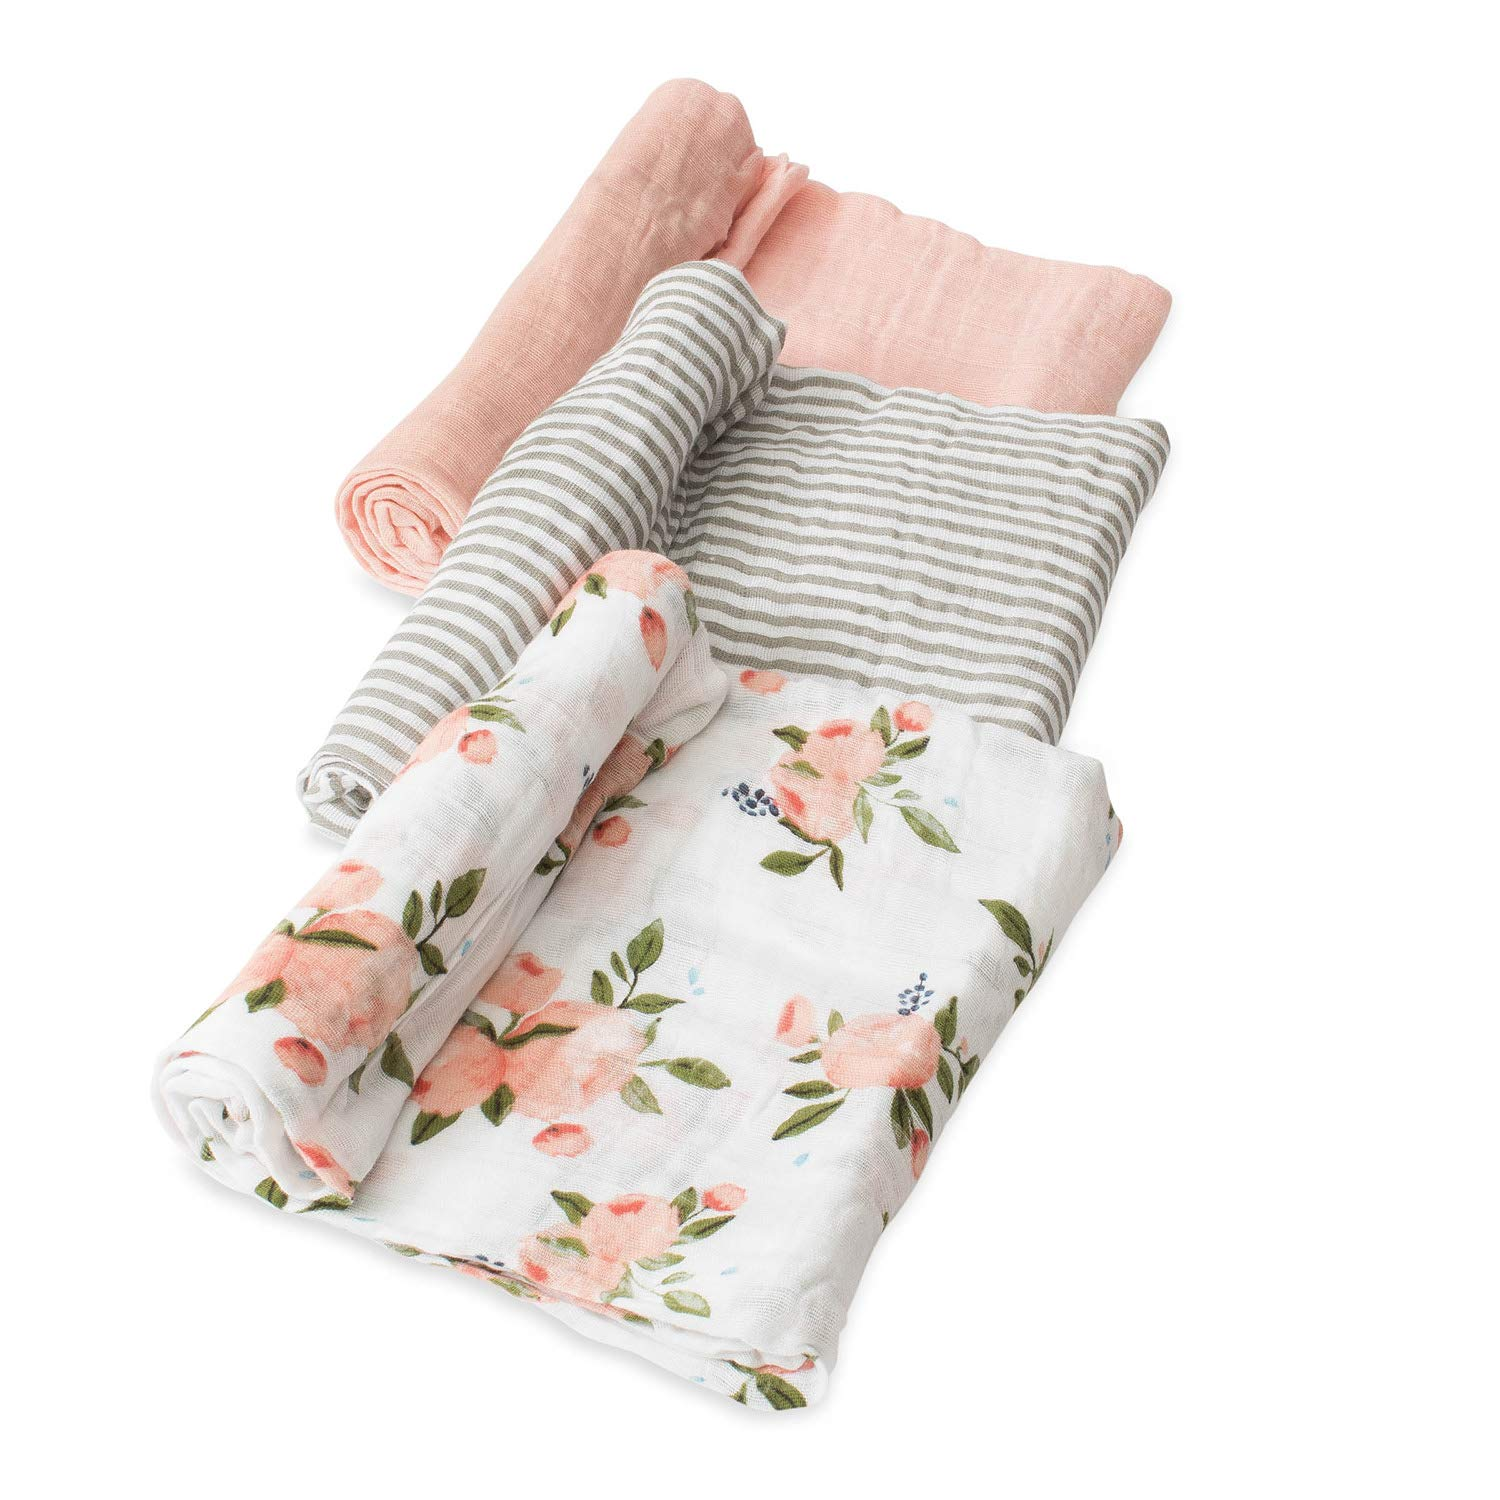 Little Unicorn Cotton Muslin Swaddle 3 Pack - Watercolor Roses